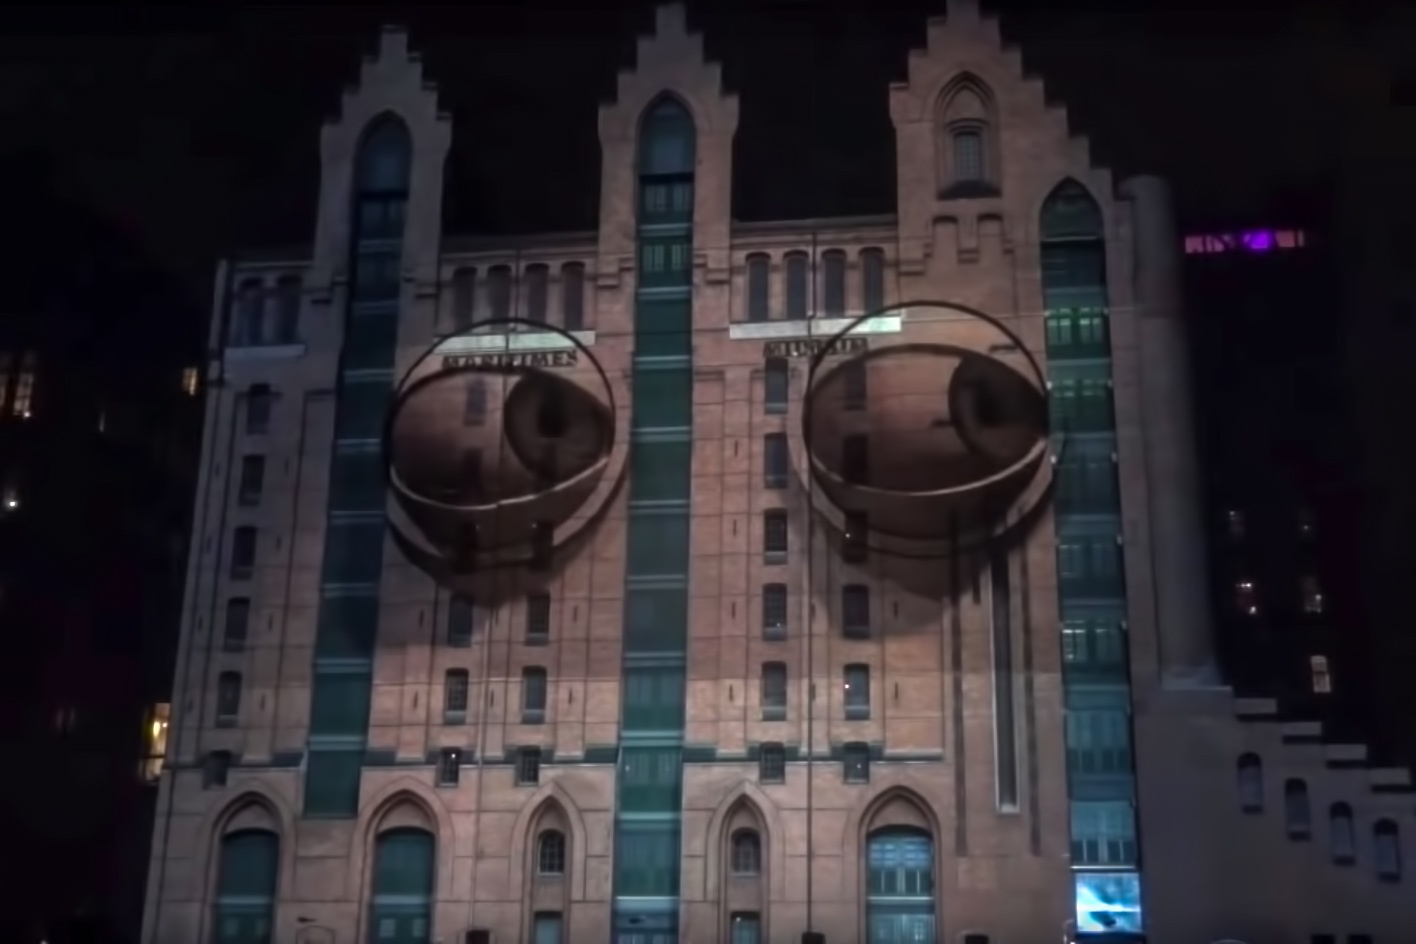 Projection Mapping